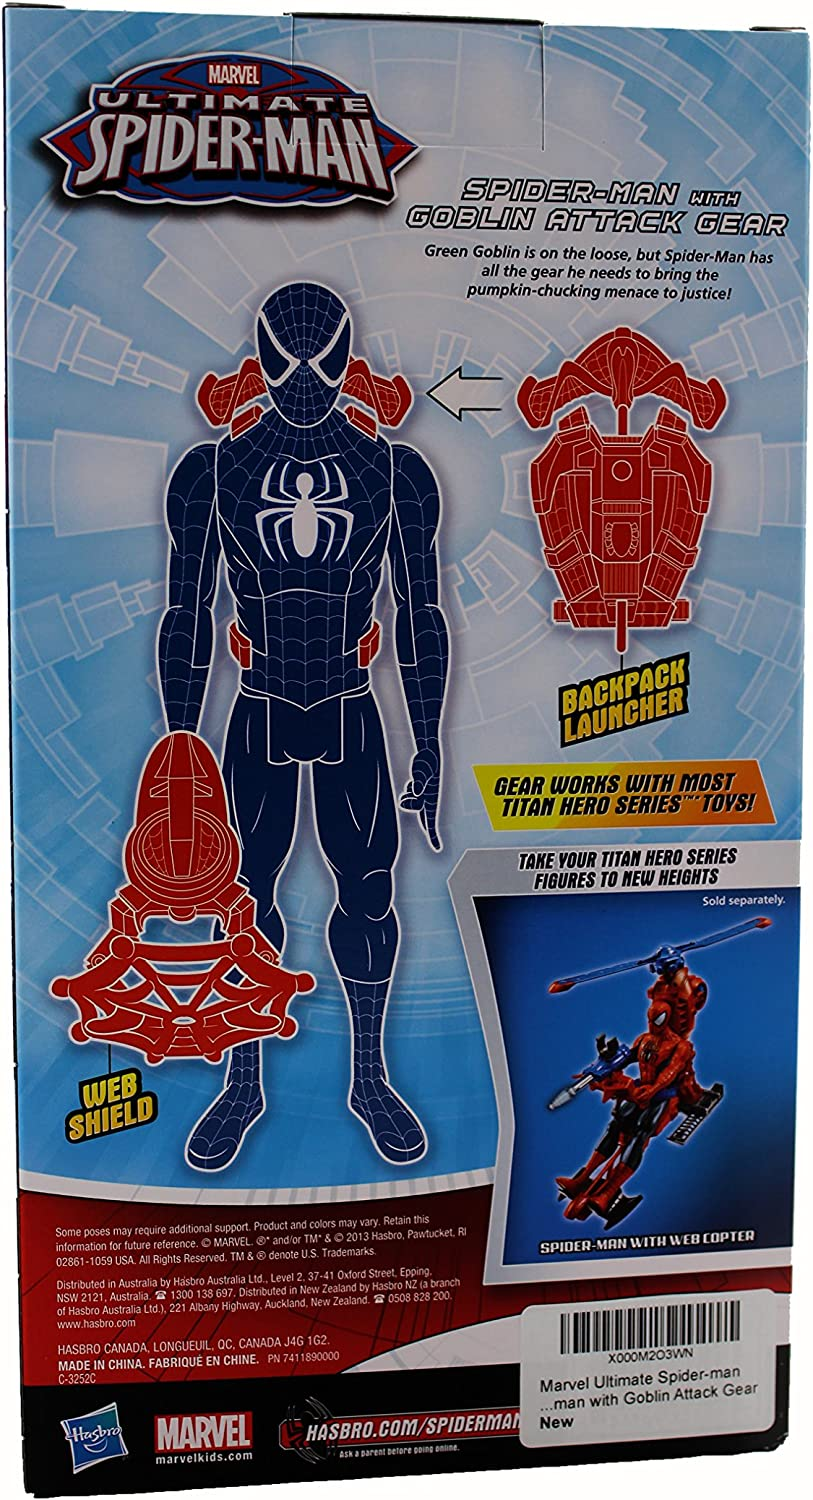 Marvel Action Toy Figure Spiderman With Goblin Attack Gear